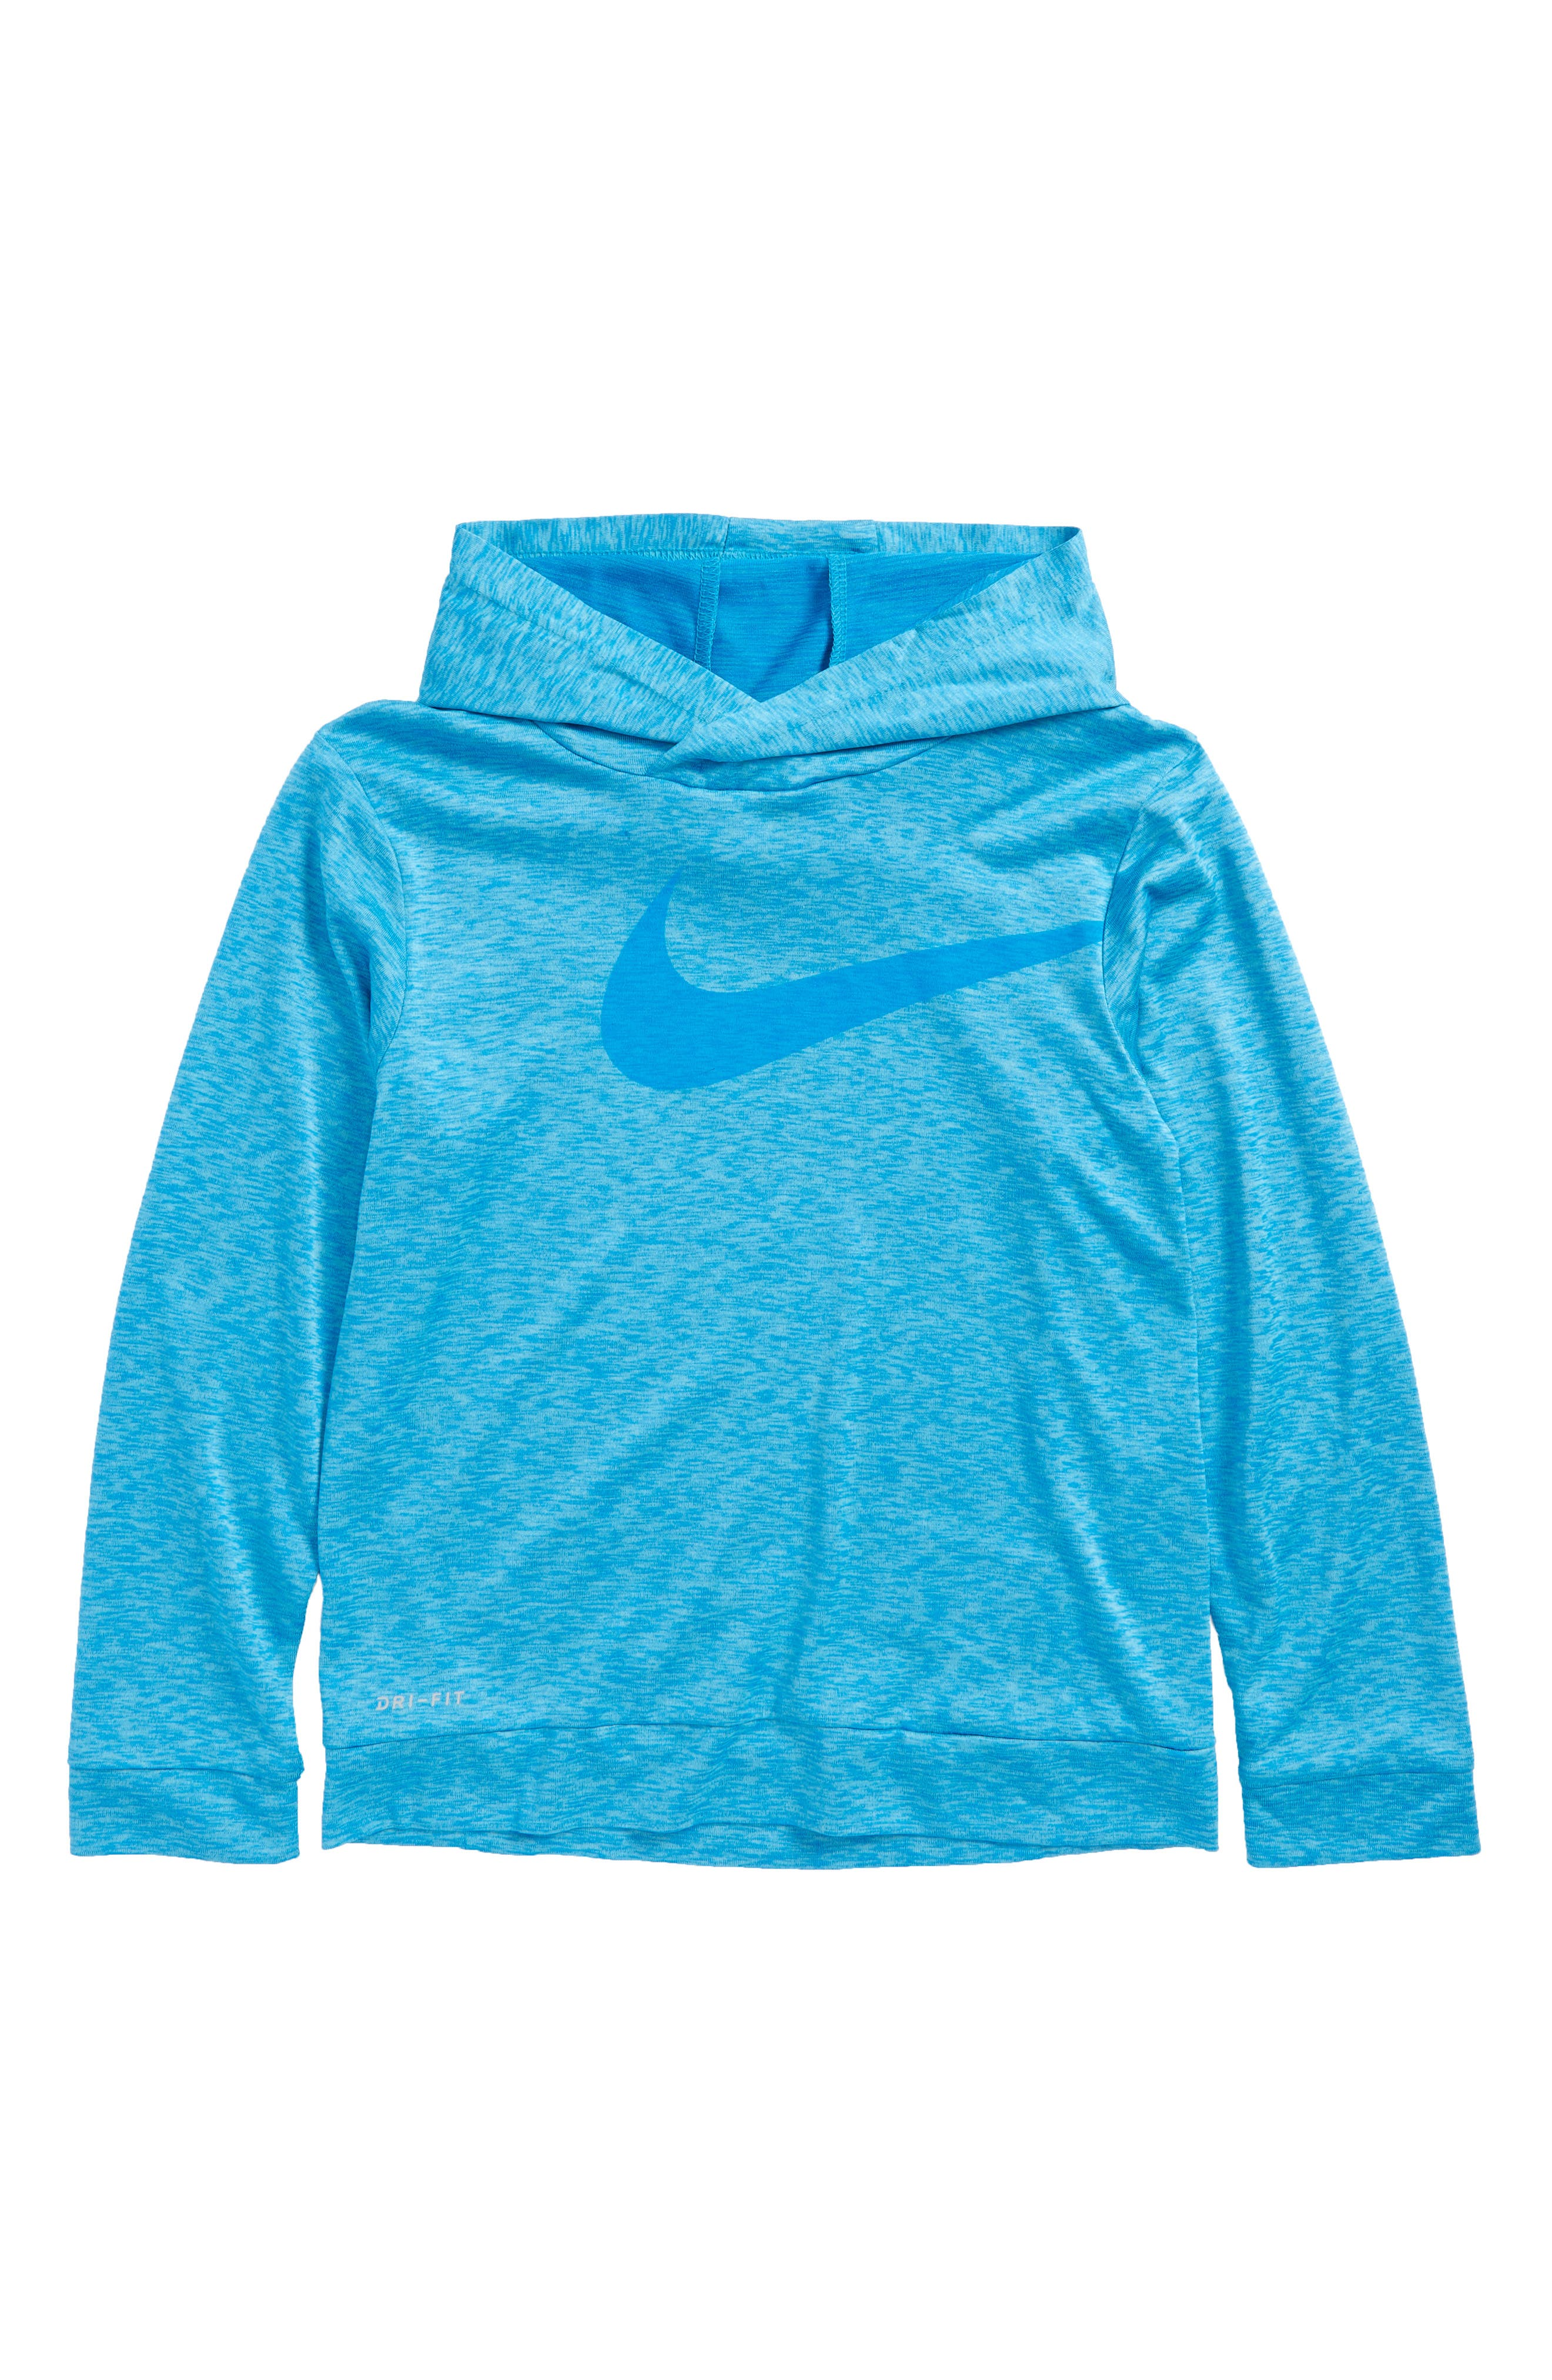 Swoosh Dri-FIT Hoodie,                         Main,                         color, Light Photo Blue Heather